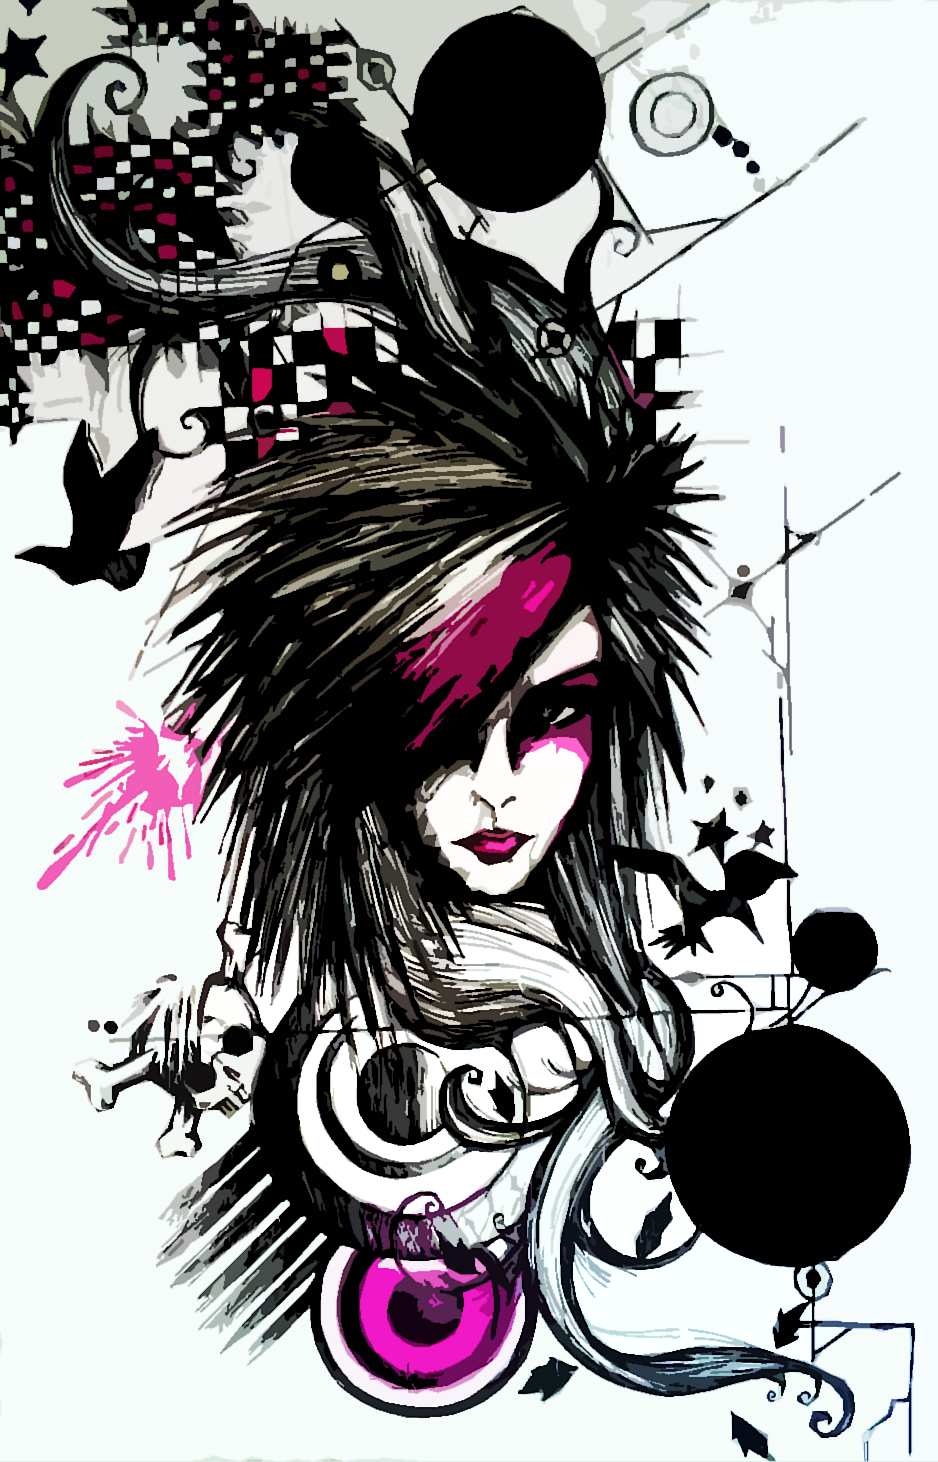 Emo Cover Art http://www.fanpop.com/clubs/emo/images/27029462/title/cover-book-fanart